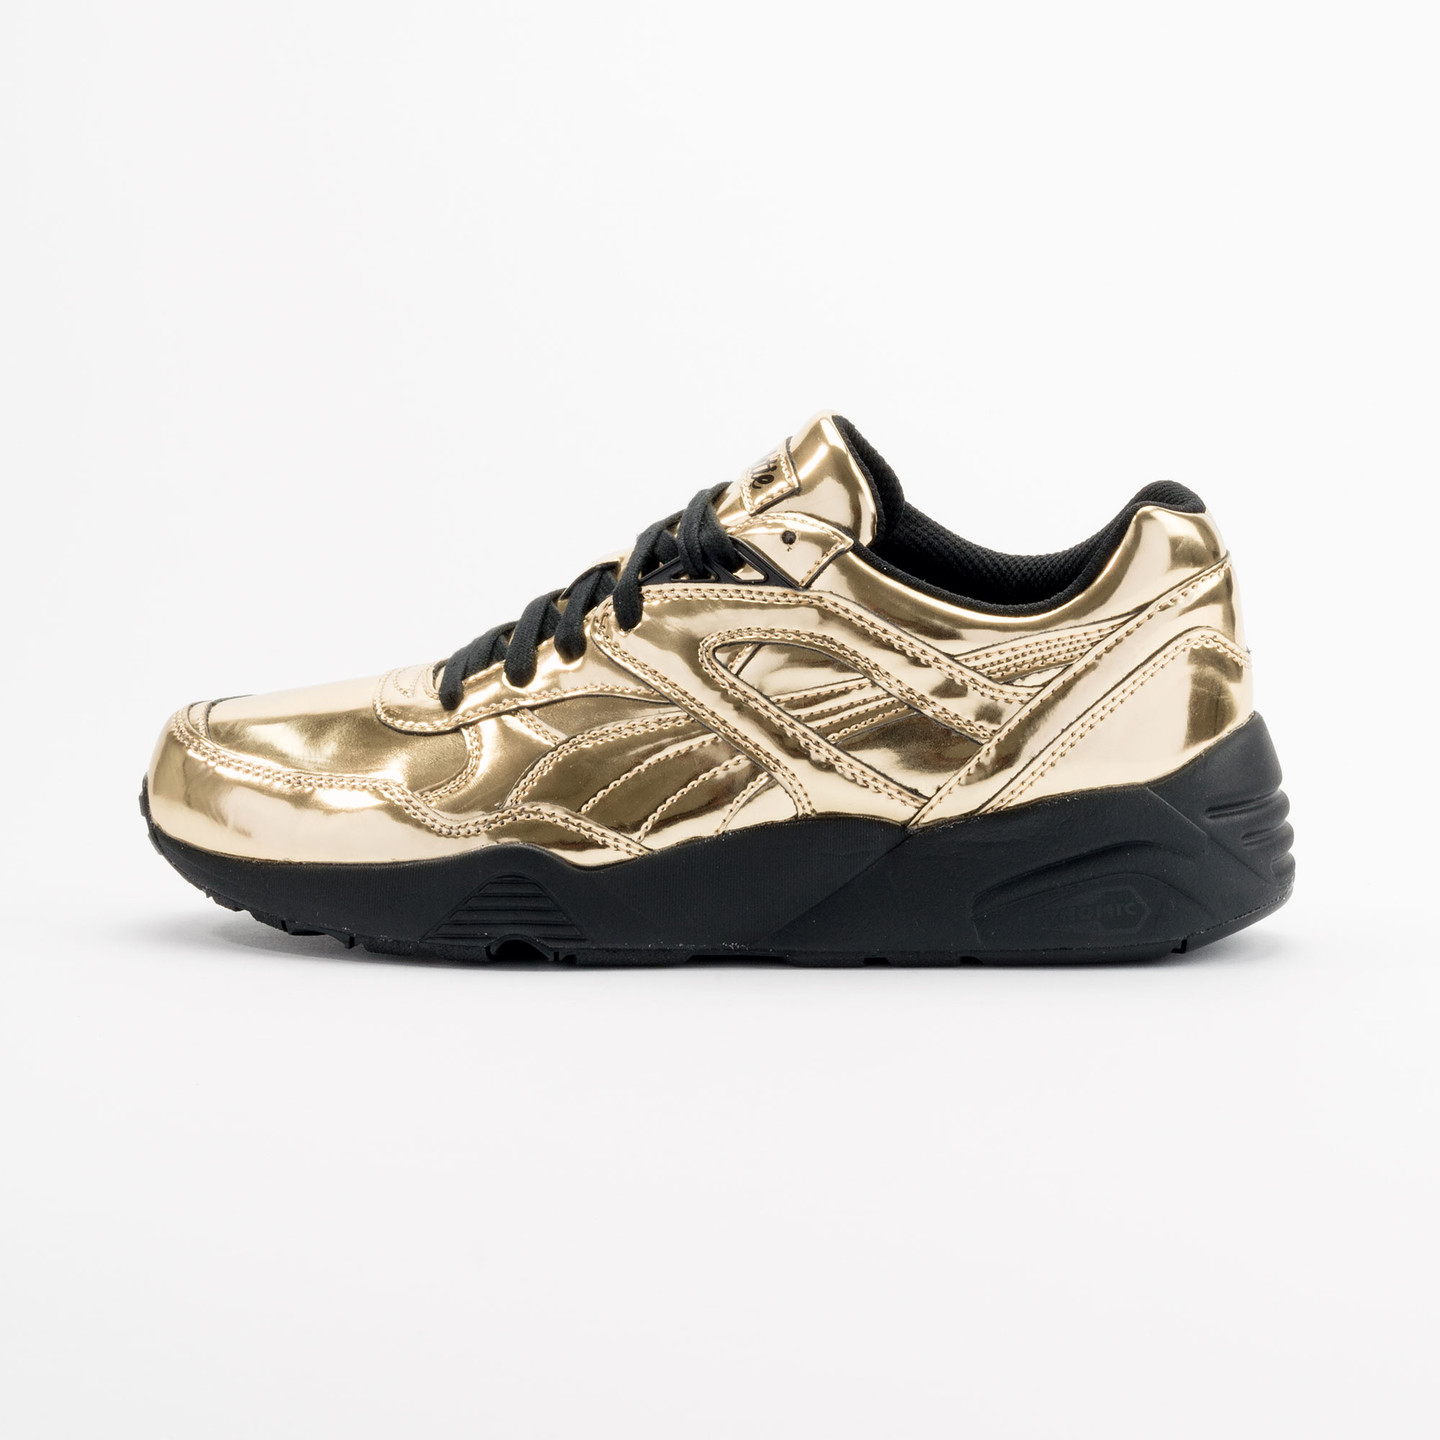 Puma R698 x Vashtie Gold Metallic Gold / Black 358838 01-44